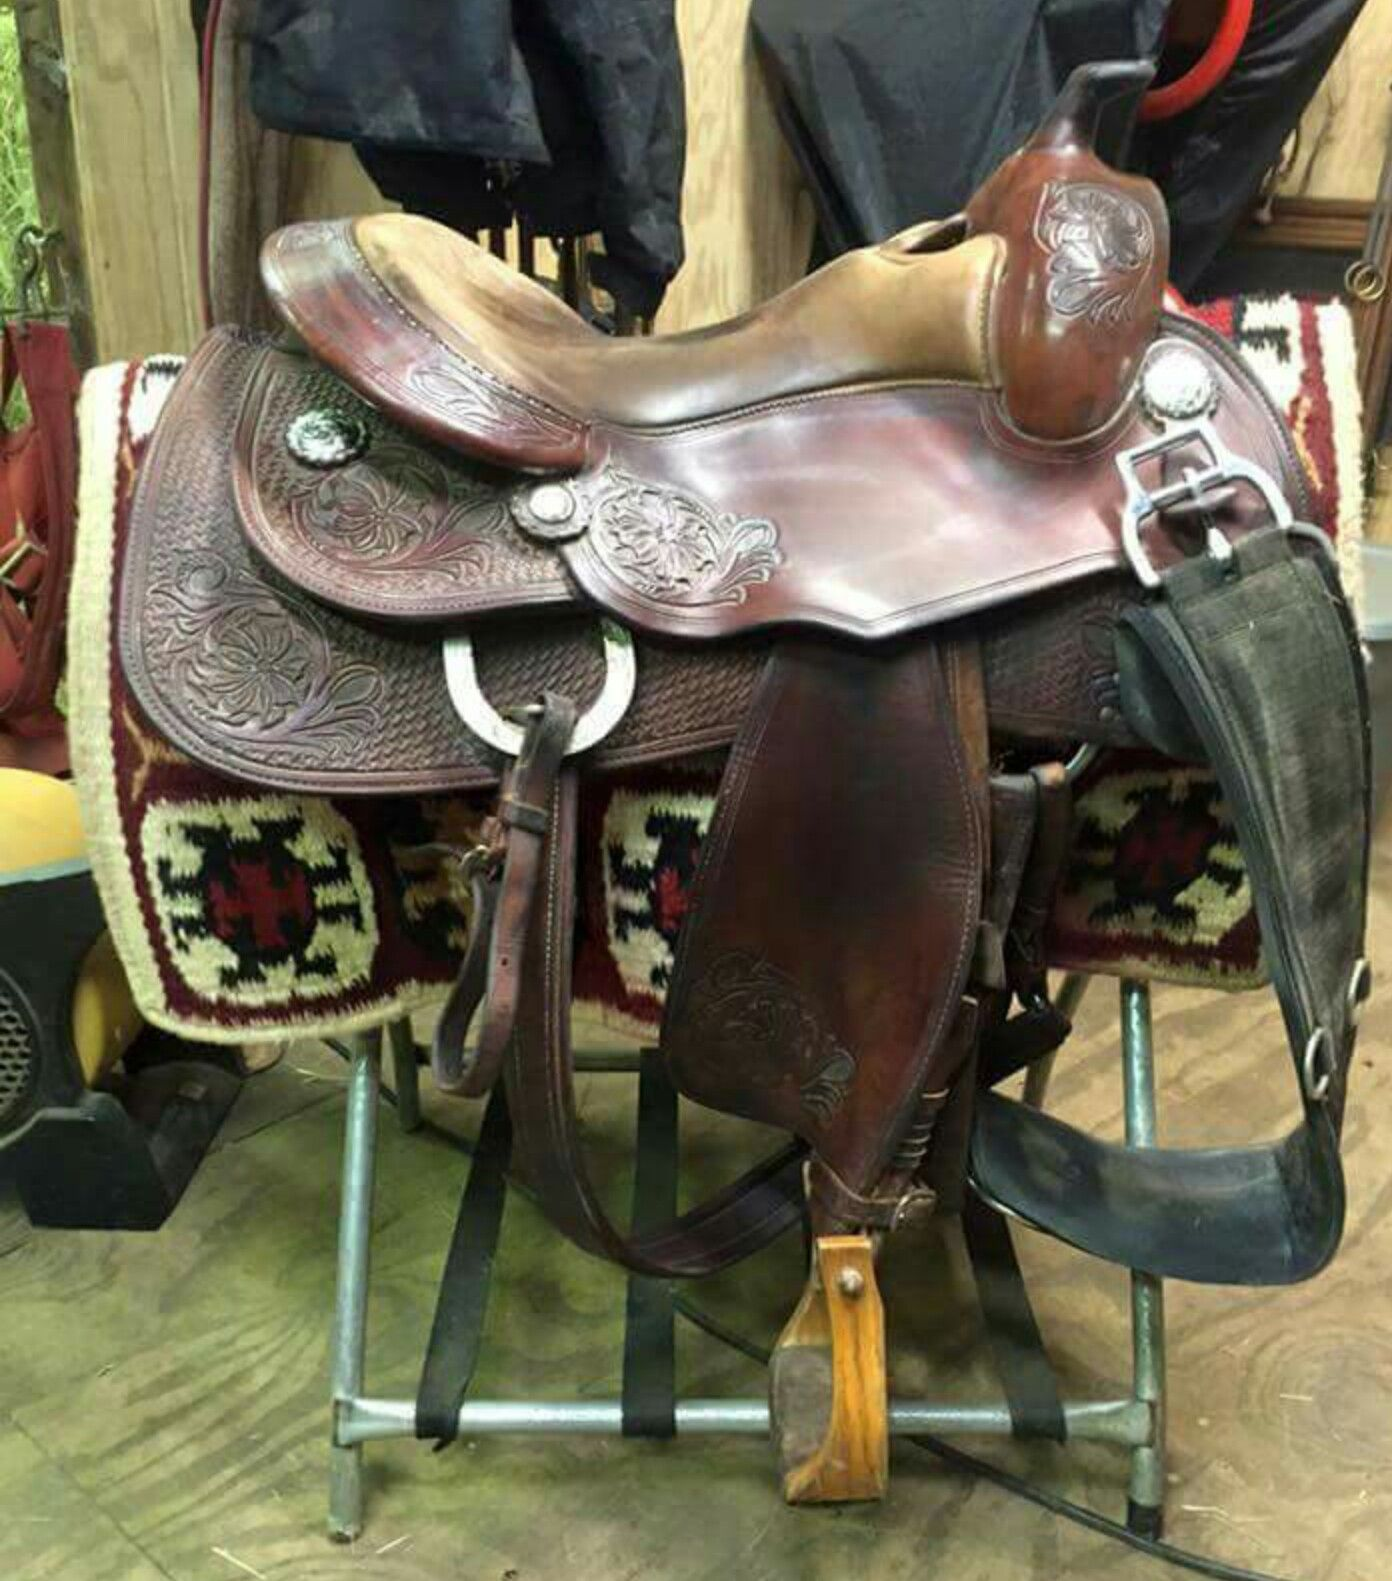 33664f3f8 15.5 Continental reining saddle $1,800 used | Horse- Tack | Saddles ...